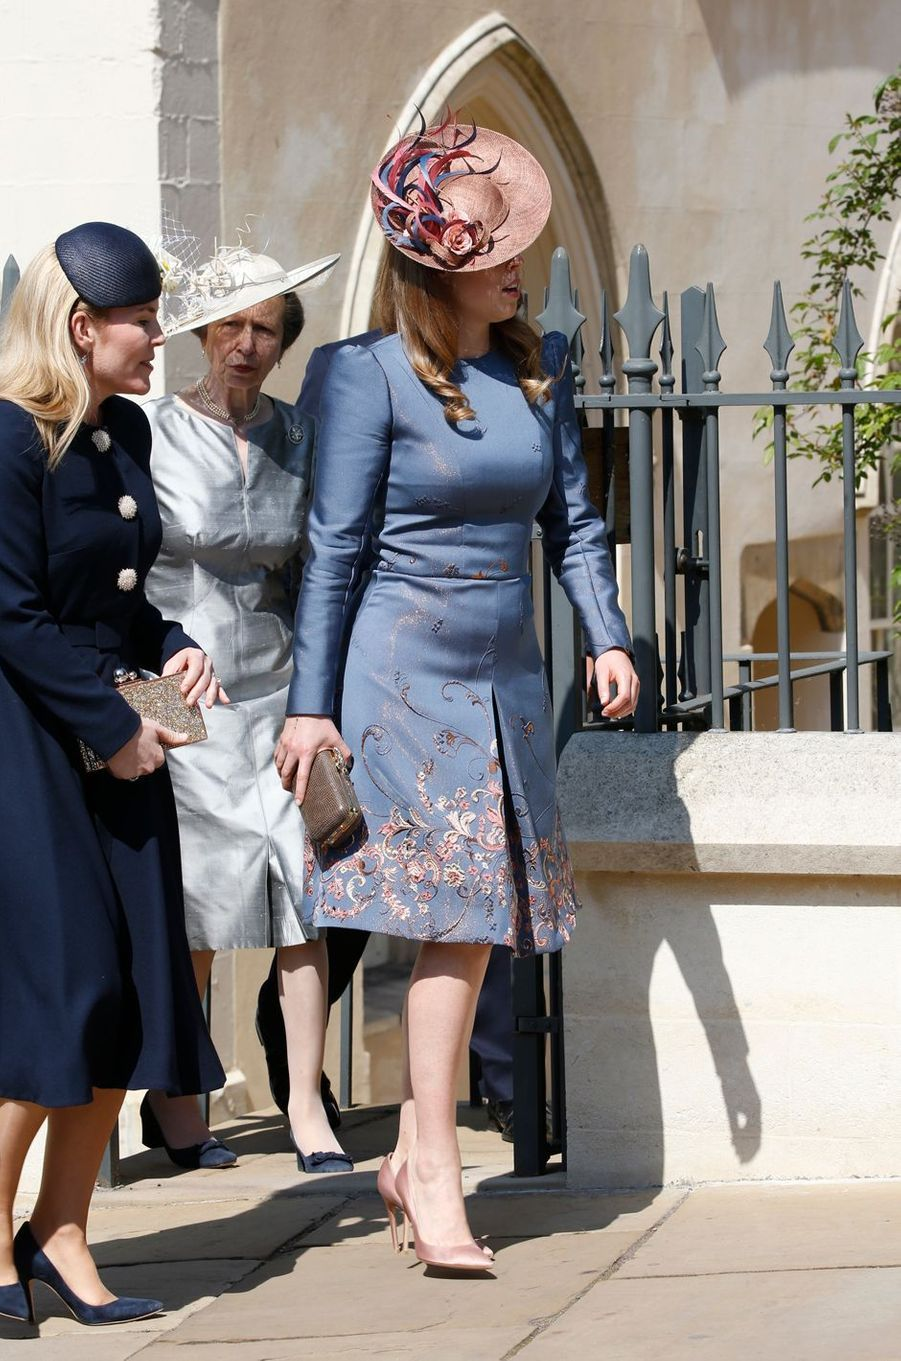 Autumn Phillips, la princesse Anne et la princesse Beatrice d'York à Windsor, le 21 avril 2019